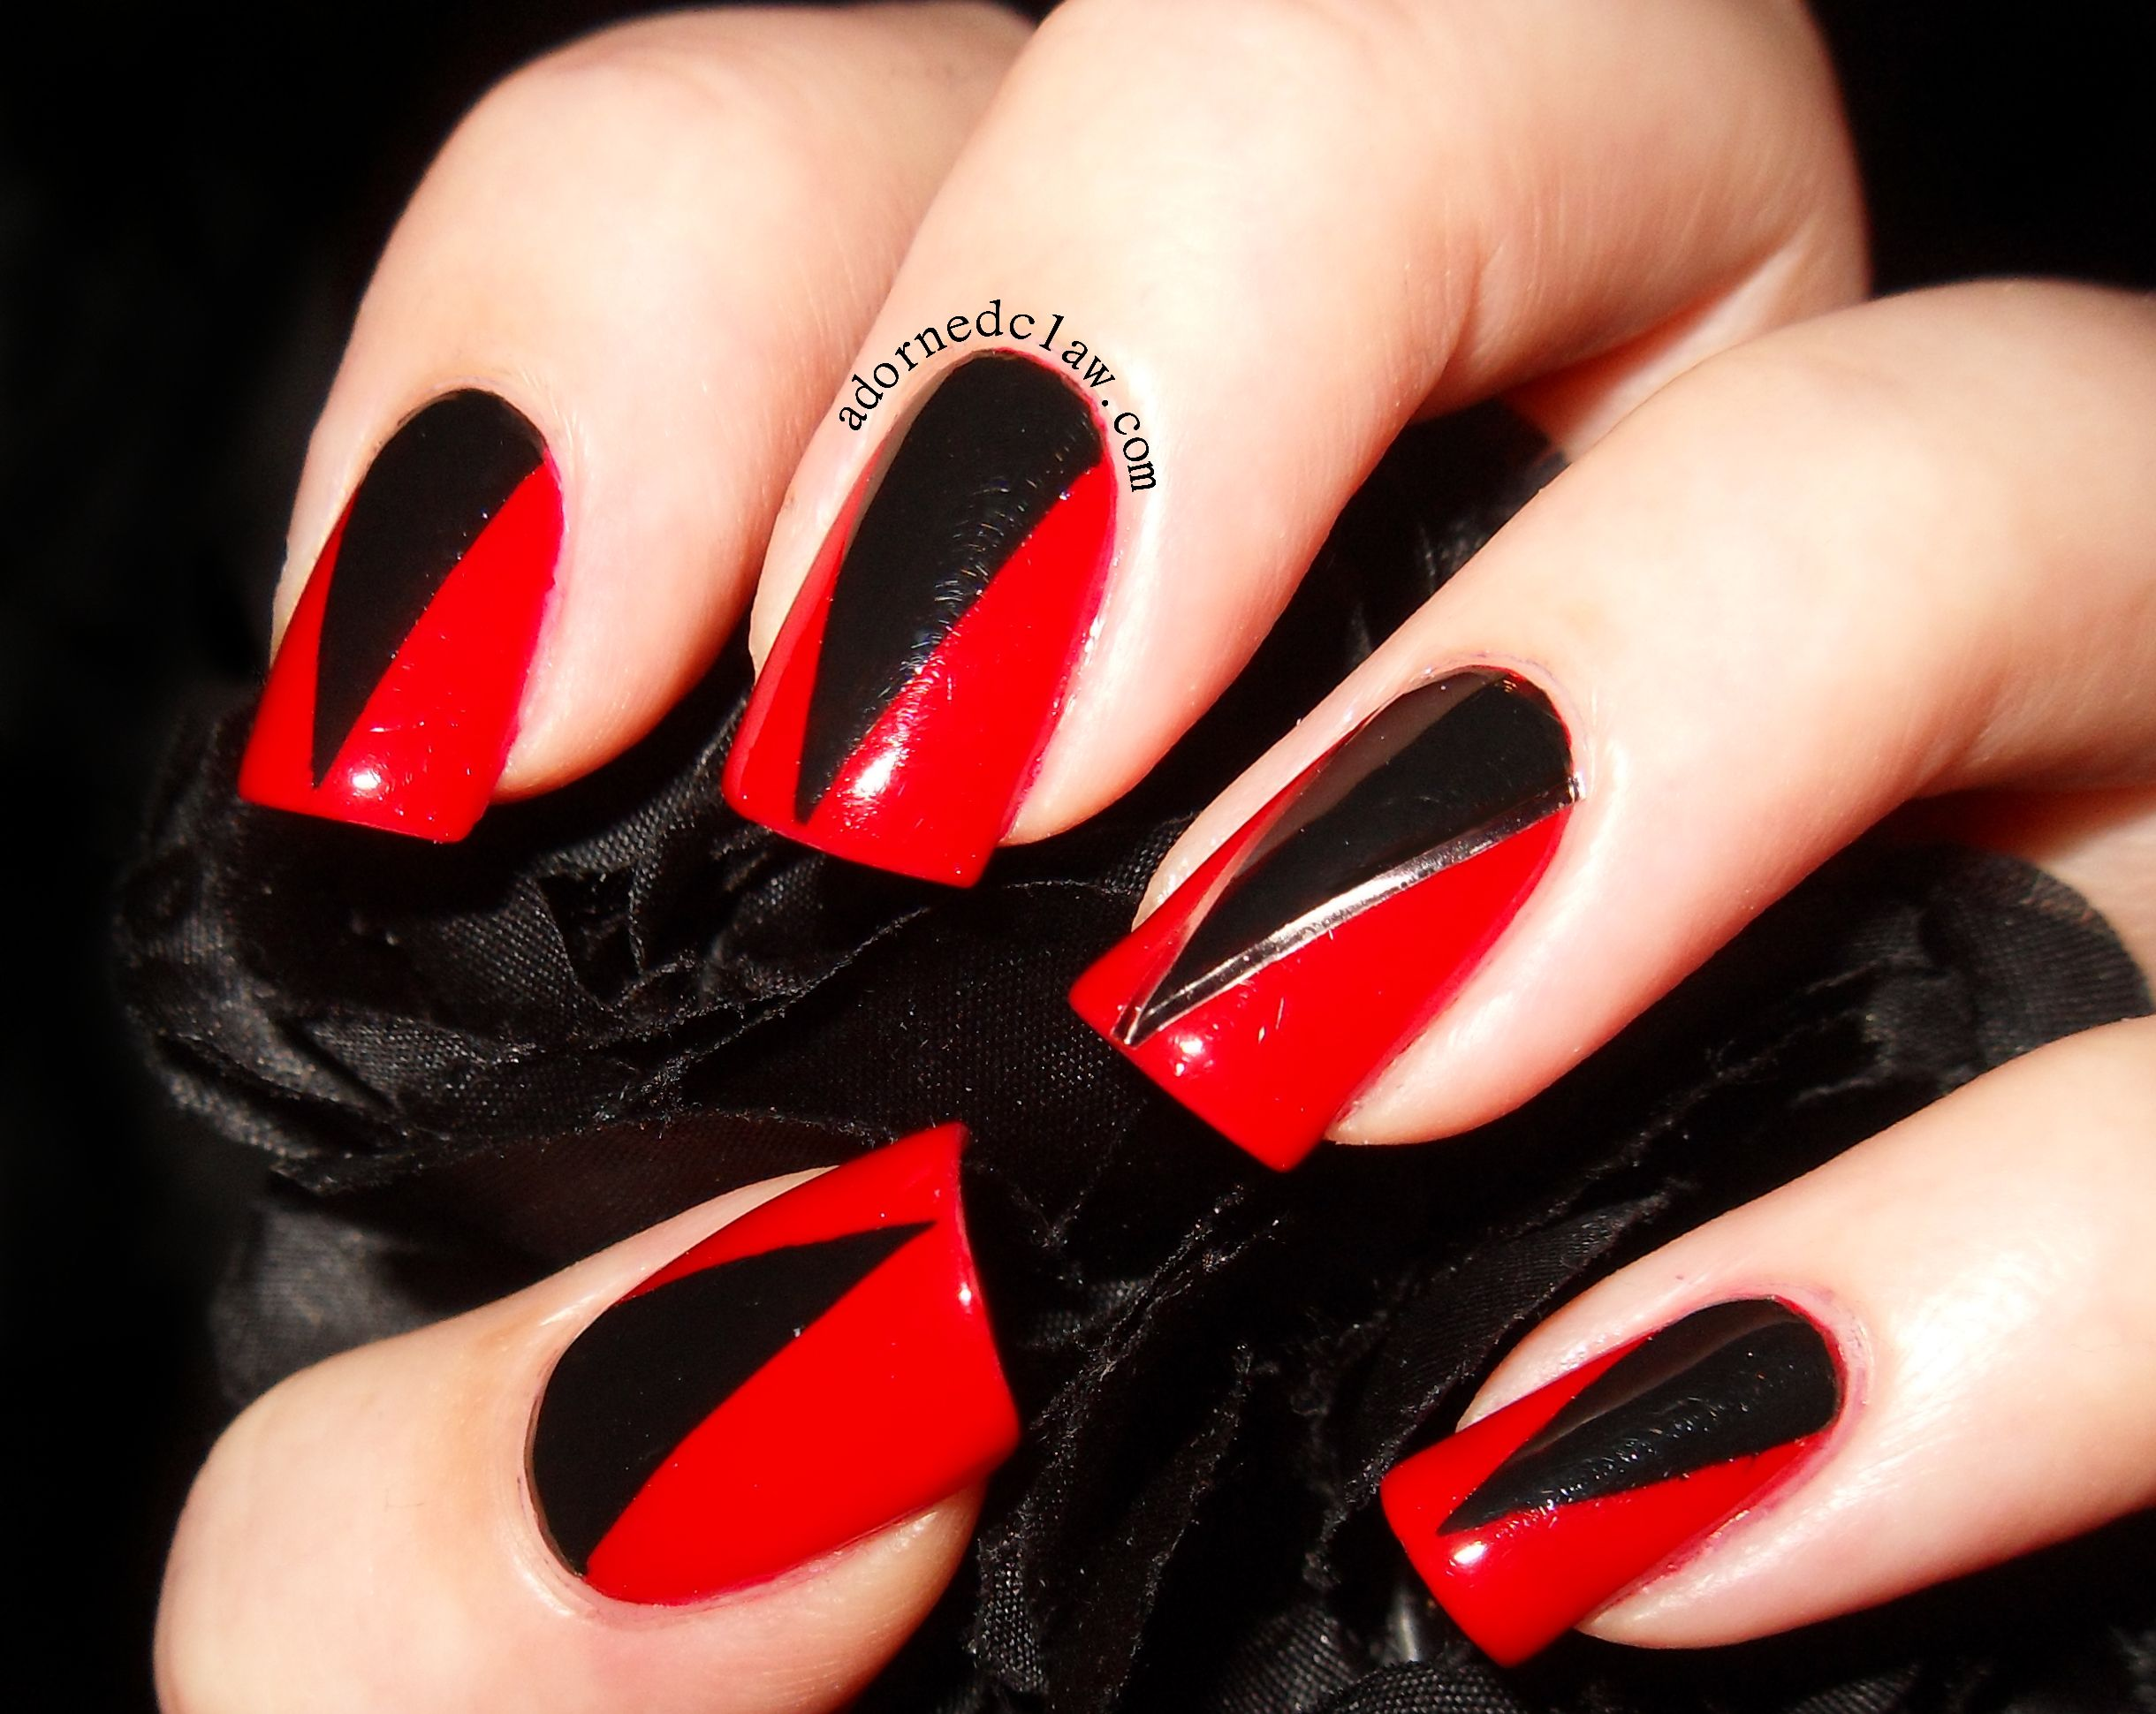 Butter london barry m striping tape red and black nail artg butter london barry m striping tape red and halloween nail designshalloween nail artblack prinsesfo Gallery